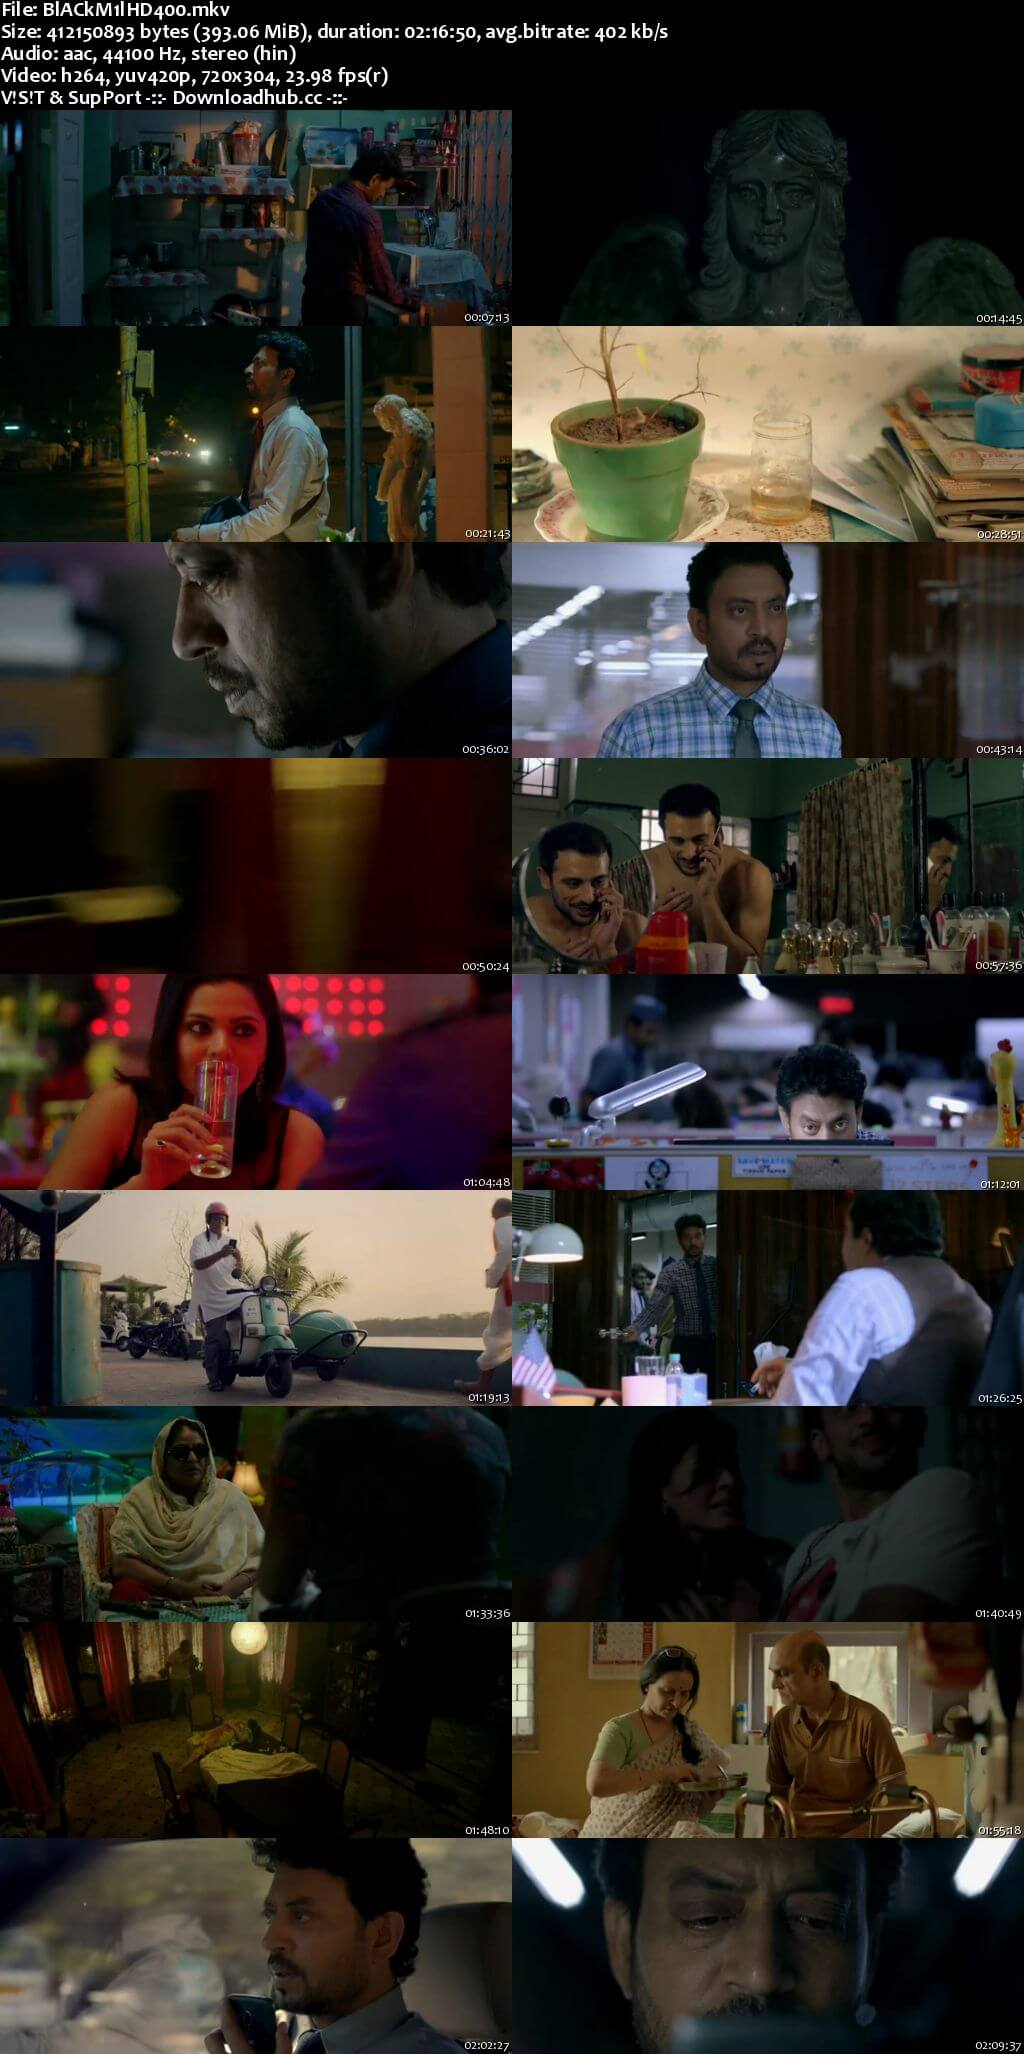 Blackmail 2018 Hindi 480p HDRip